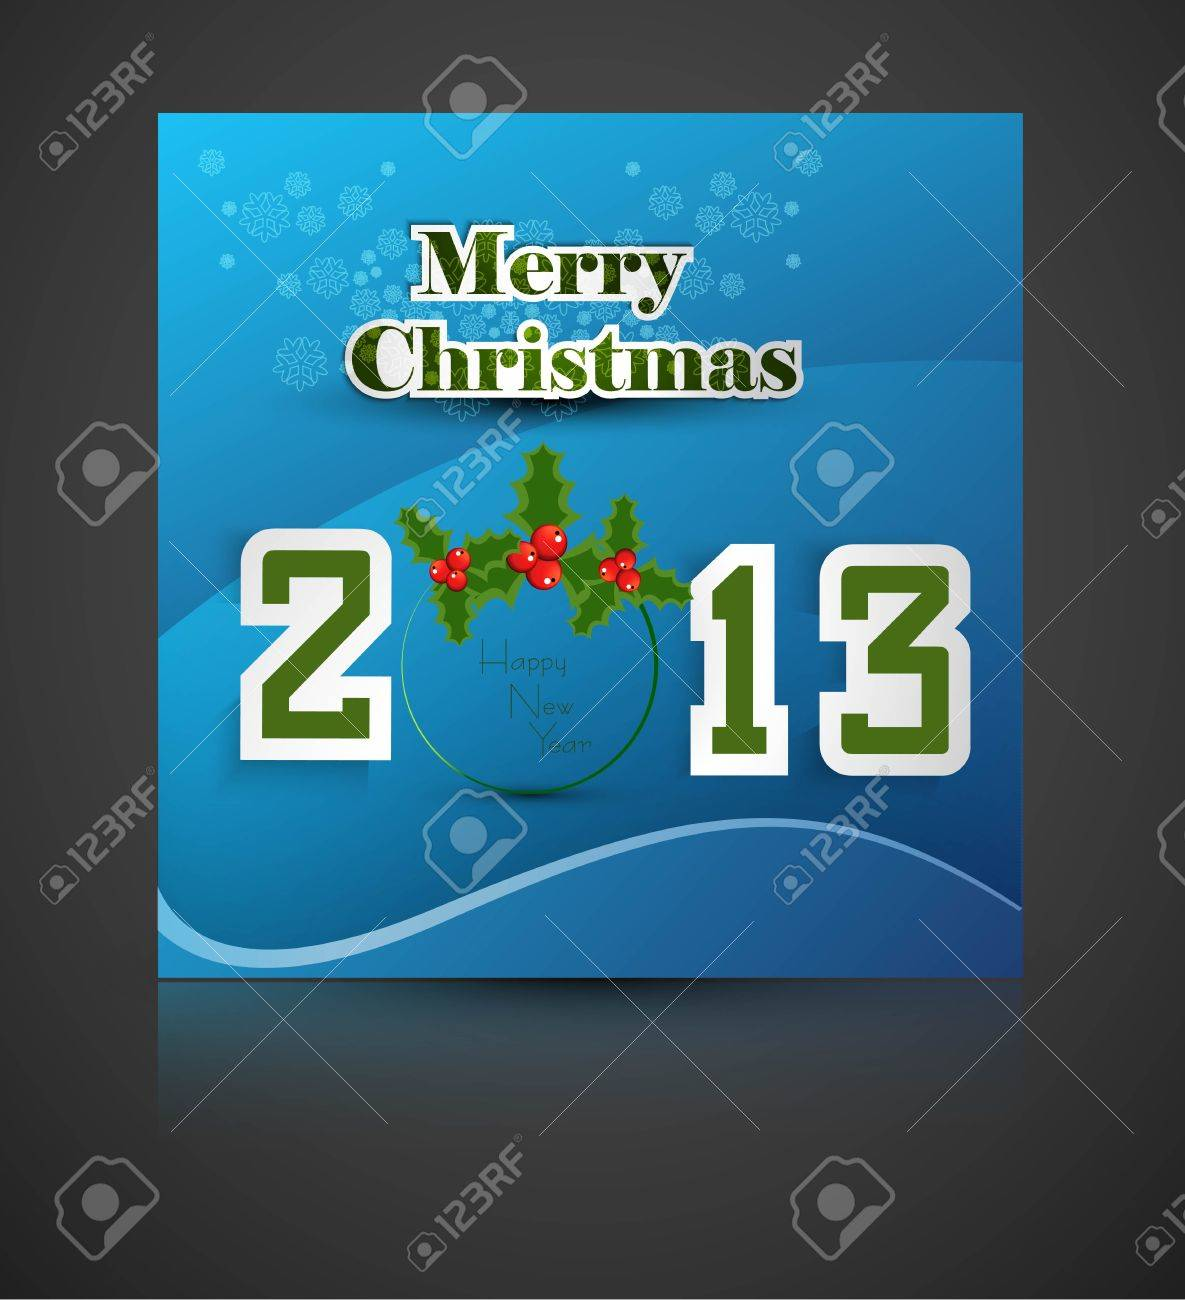 New year stylish 2013 merry christmas font blue colorful card Stock Vector - 17789860